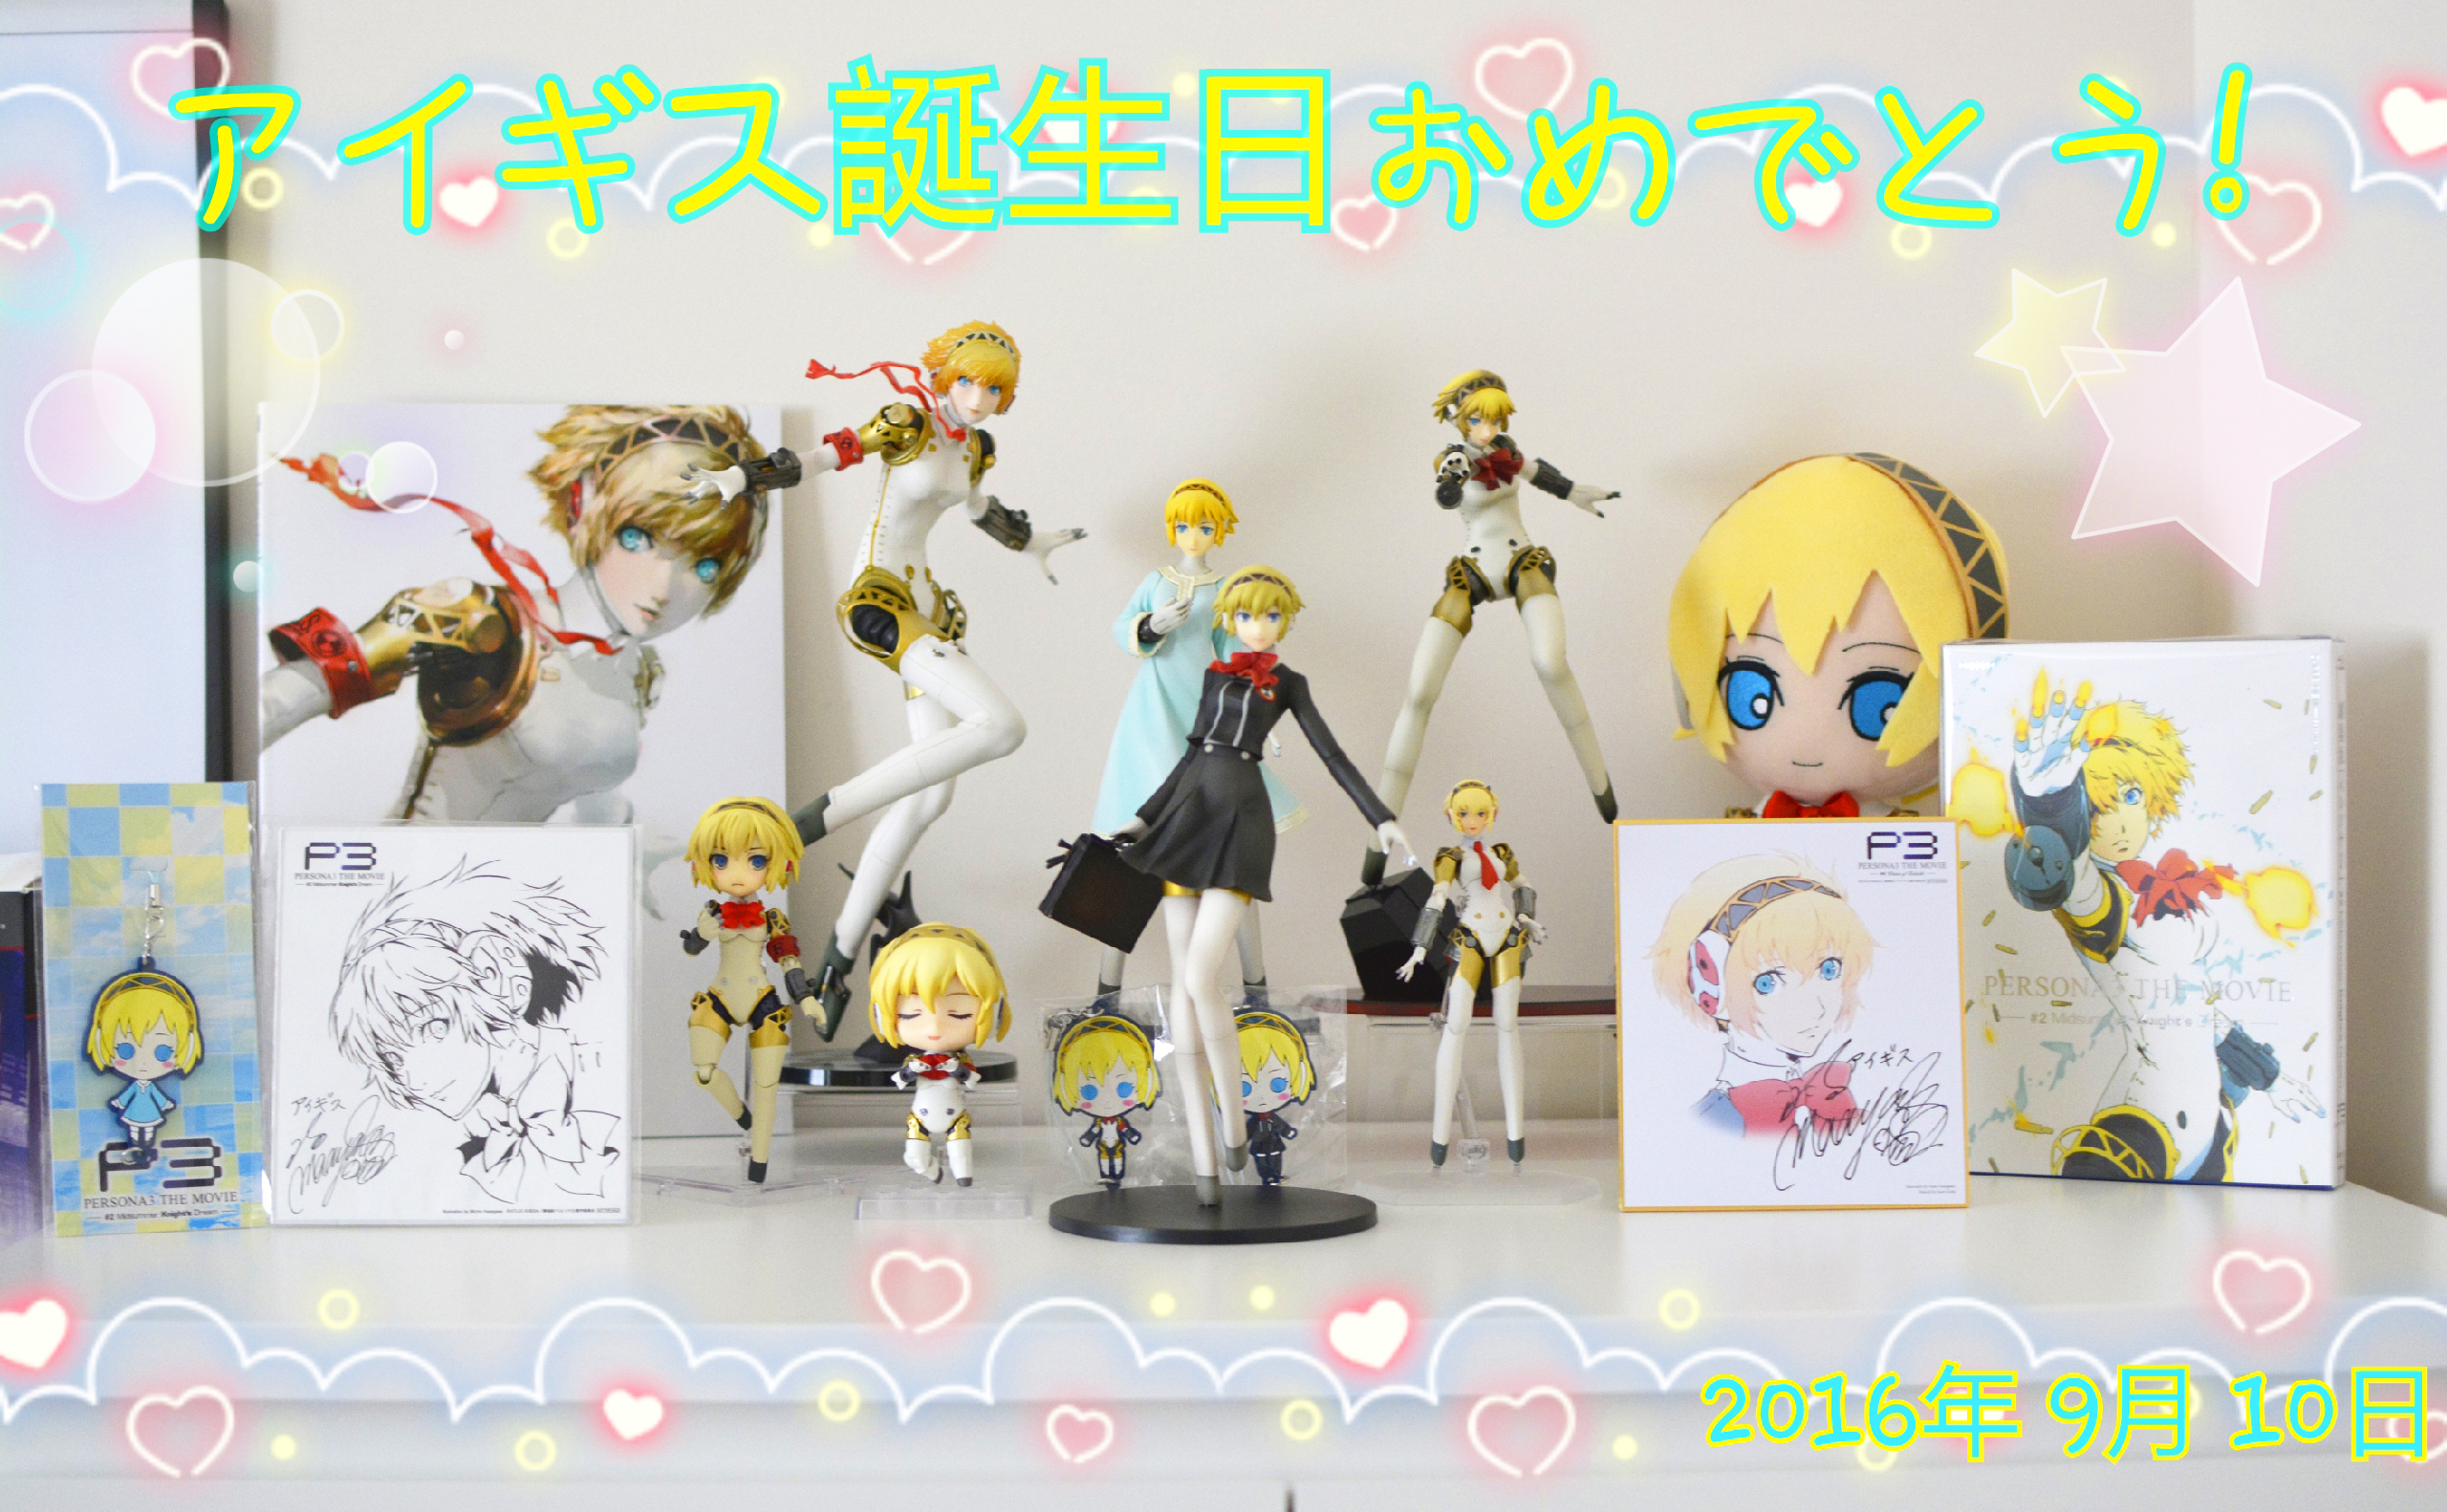 "figma sega gift nendoroid_plus strap nendoroid atlus alter max_factory enterbrain good_smile_company artbook persona_3 persona_4 shikishi aegis ascii_media_works movic phat_company ques_q nendoron saitou_fumiki asai_(apsy)_masaki rubber_strap aniplex toona_kanshi noto_mamiko sakamoto_maaya tanaka_rie meguro_shouji blu-ray soejima_shigenori shirasaki_isao sunny_side_up persona_4:_the_ultimate_in_mayonaka_arena happykuji ishida_akira midorikawa_hikaru toriumi_kousuke nakai_kazuya toyoguchi_megumi kawamura_yumi lotus_juice ogata_megumi ja_hana parfom keisuke_watabe persona_3_the_movie:_#2_midsummer_knight's_dream happykuji_persona_3_the_movie:_#2_midsummer_knight's_dream persona_3_the_movie:_#3_falling_down persona_3_the_movie_#3_rubber_strap_collection_""commu-rubber"" persona_3_the_movie_#2_rubber_strap_collection_""commu-rubber"" persona_3_portable persona_3_the_movie:_#4_winter_of_rebirth hasegawa_yukio"